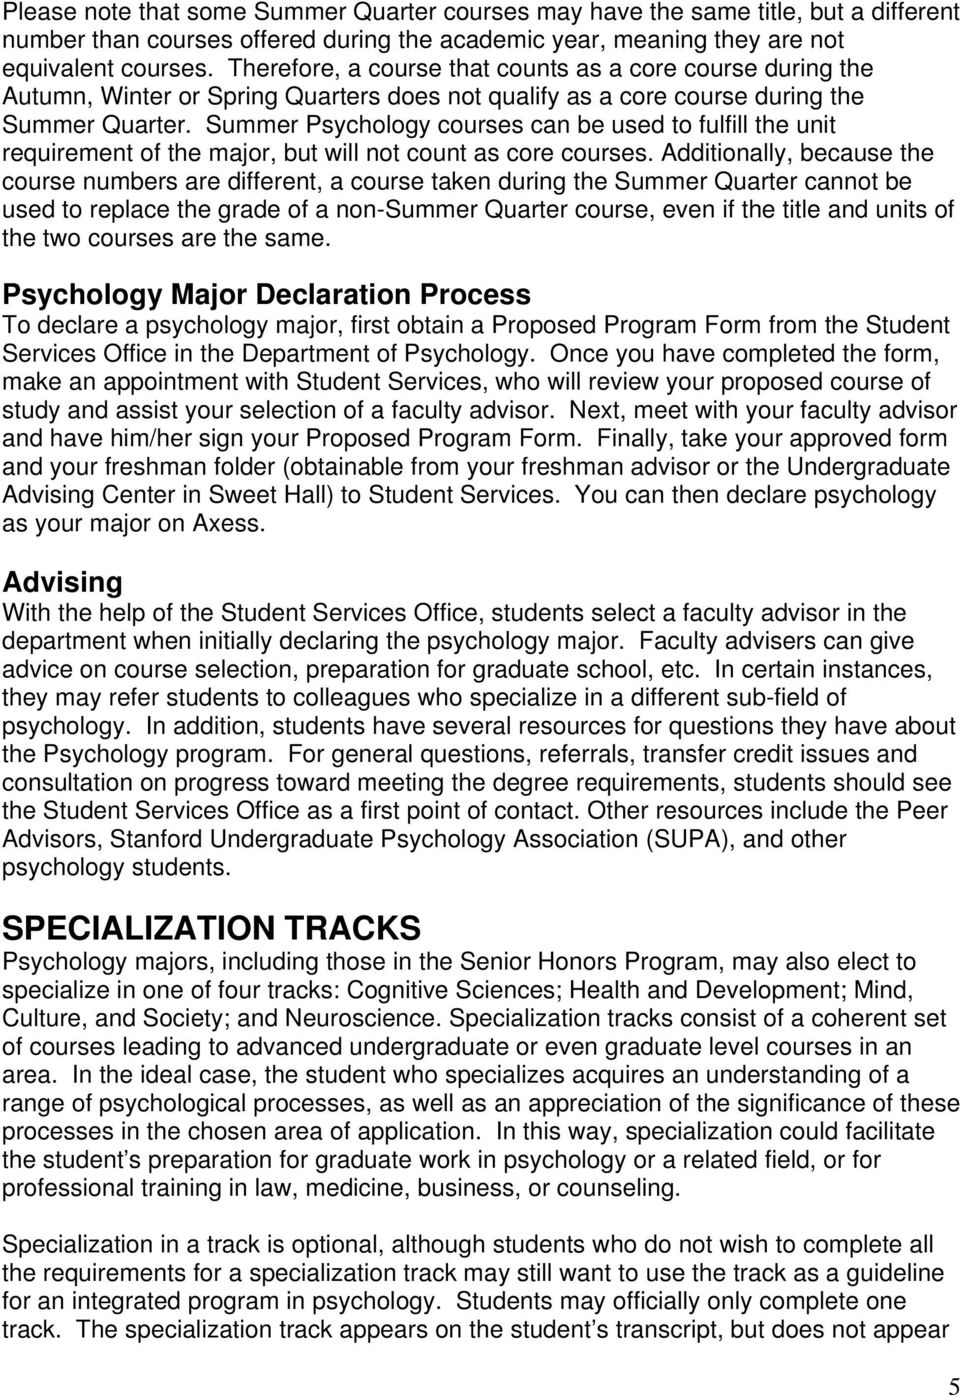 Summer Psychology courses can be used to fulfill the unit requirement of the major, but will not count as core courses.